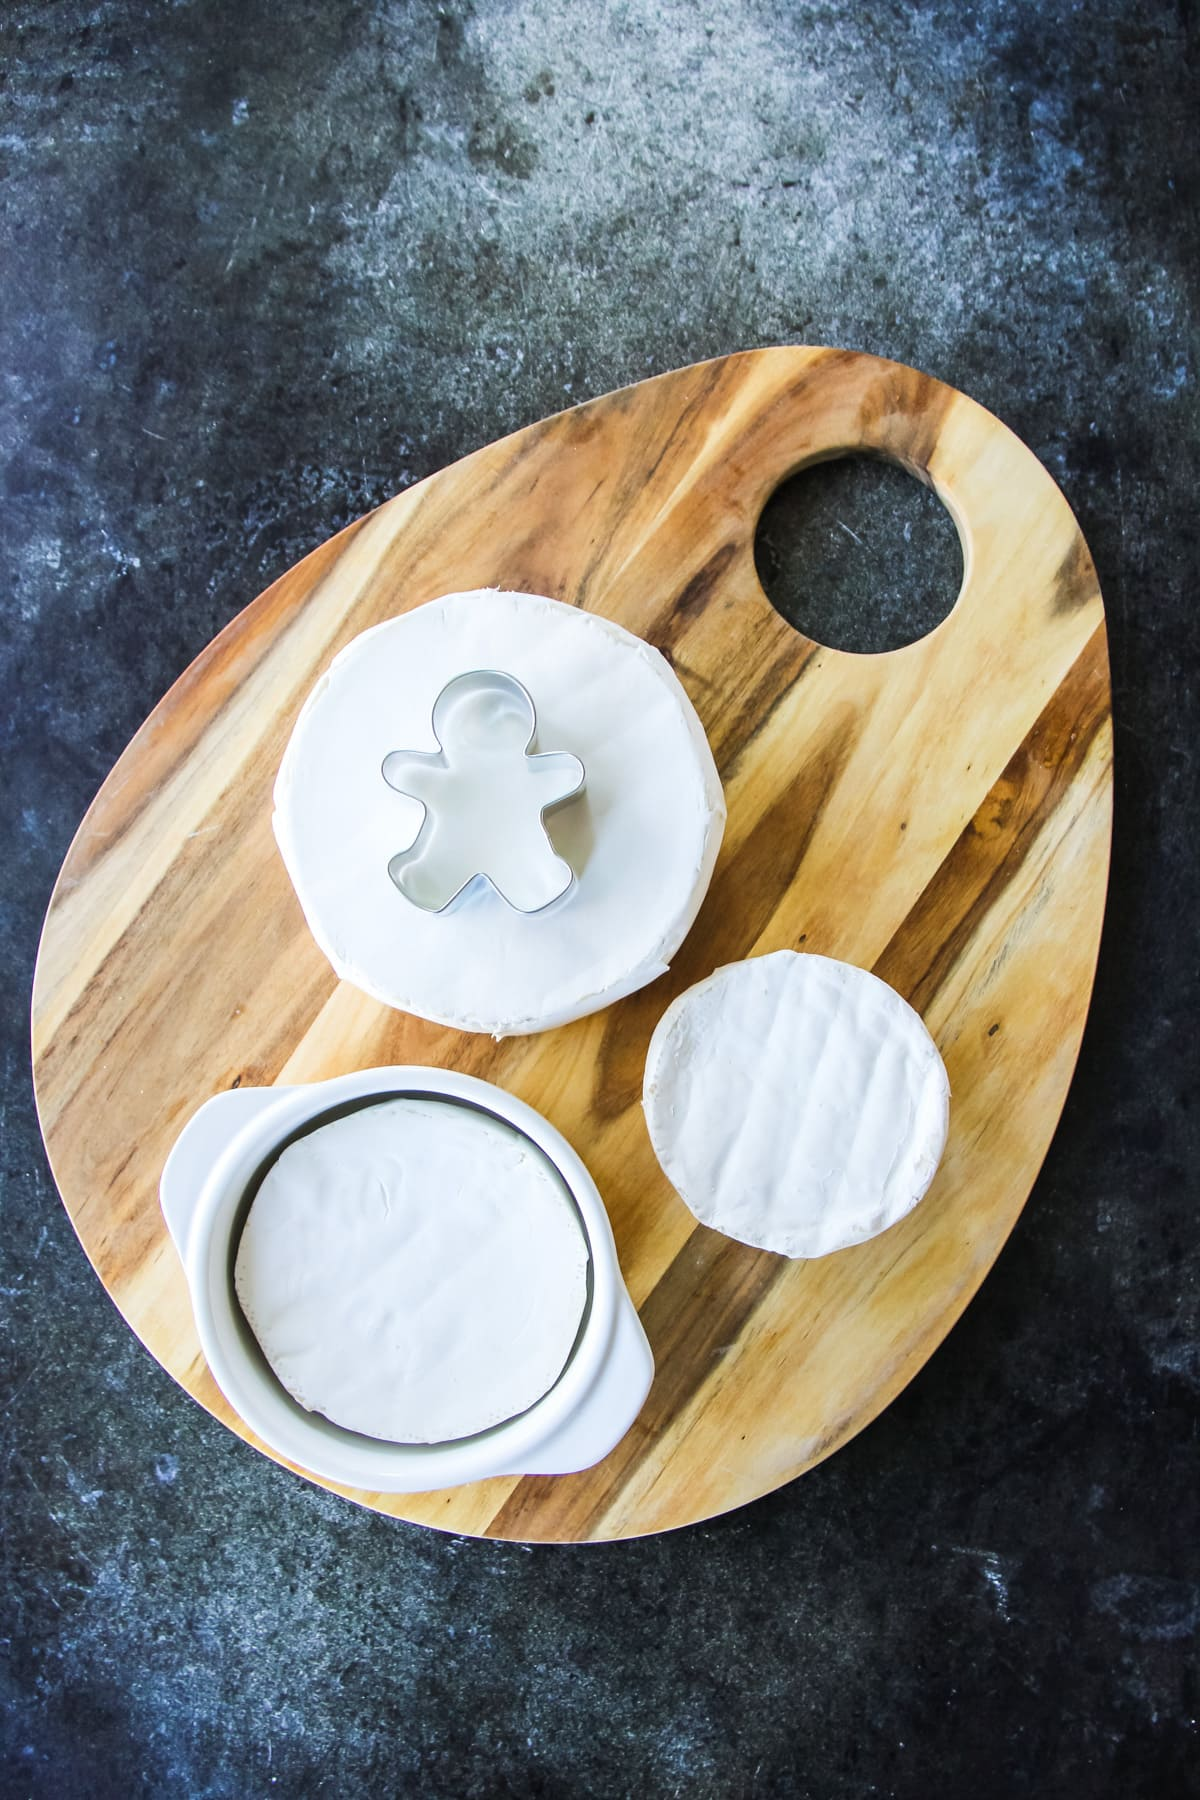 A cheese board with three wheels of Brie cheese